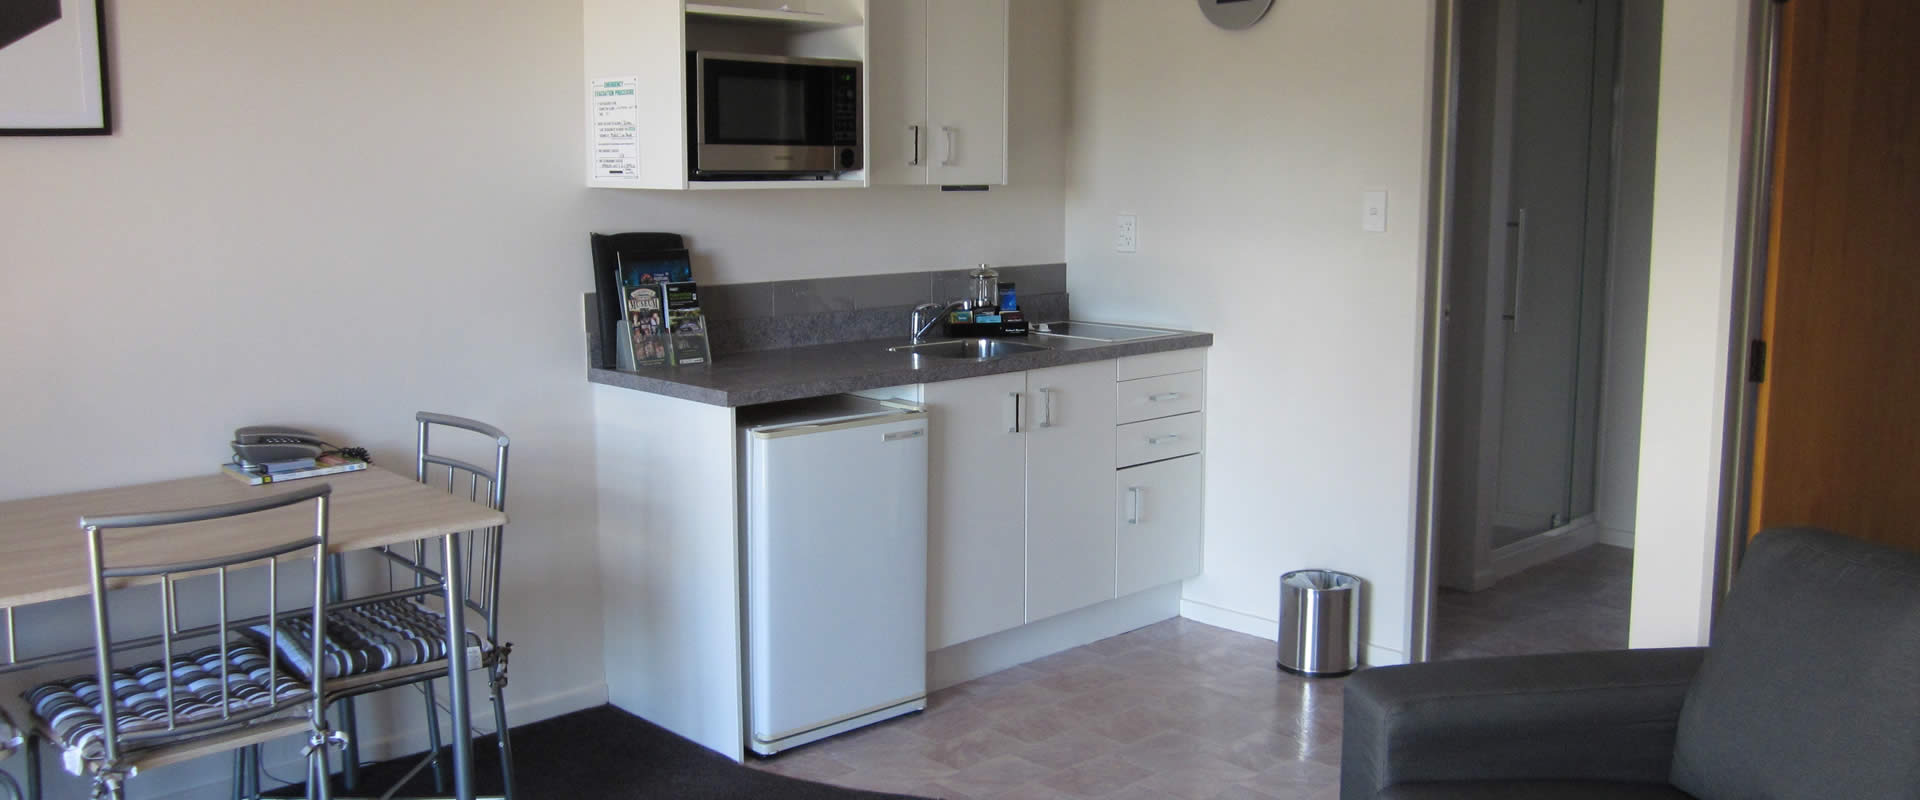 Kiwi Court Motel - Hawera Accommodation Room Facilities